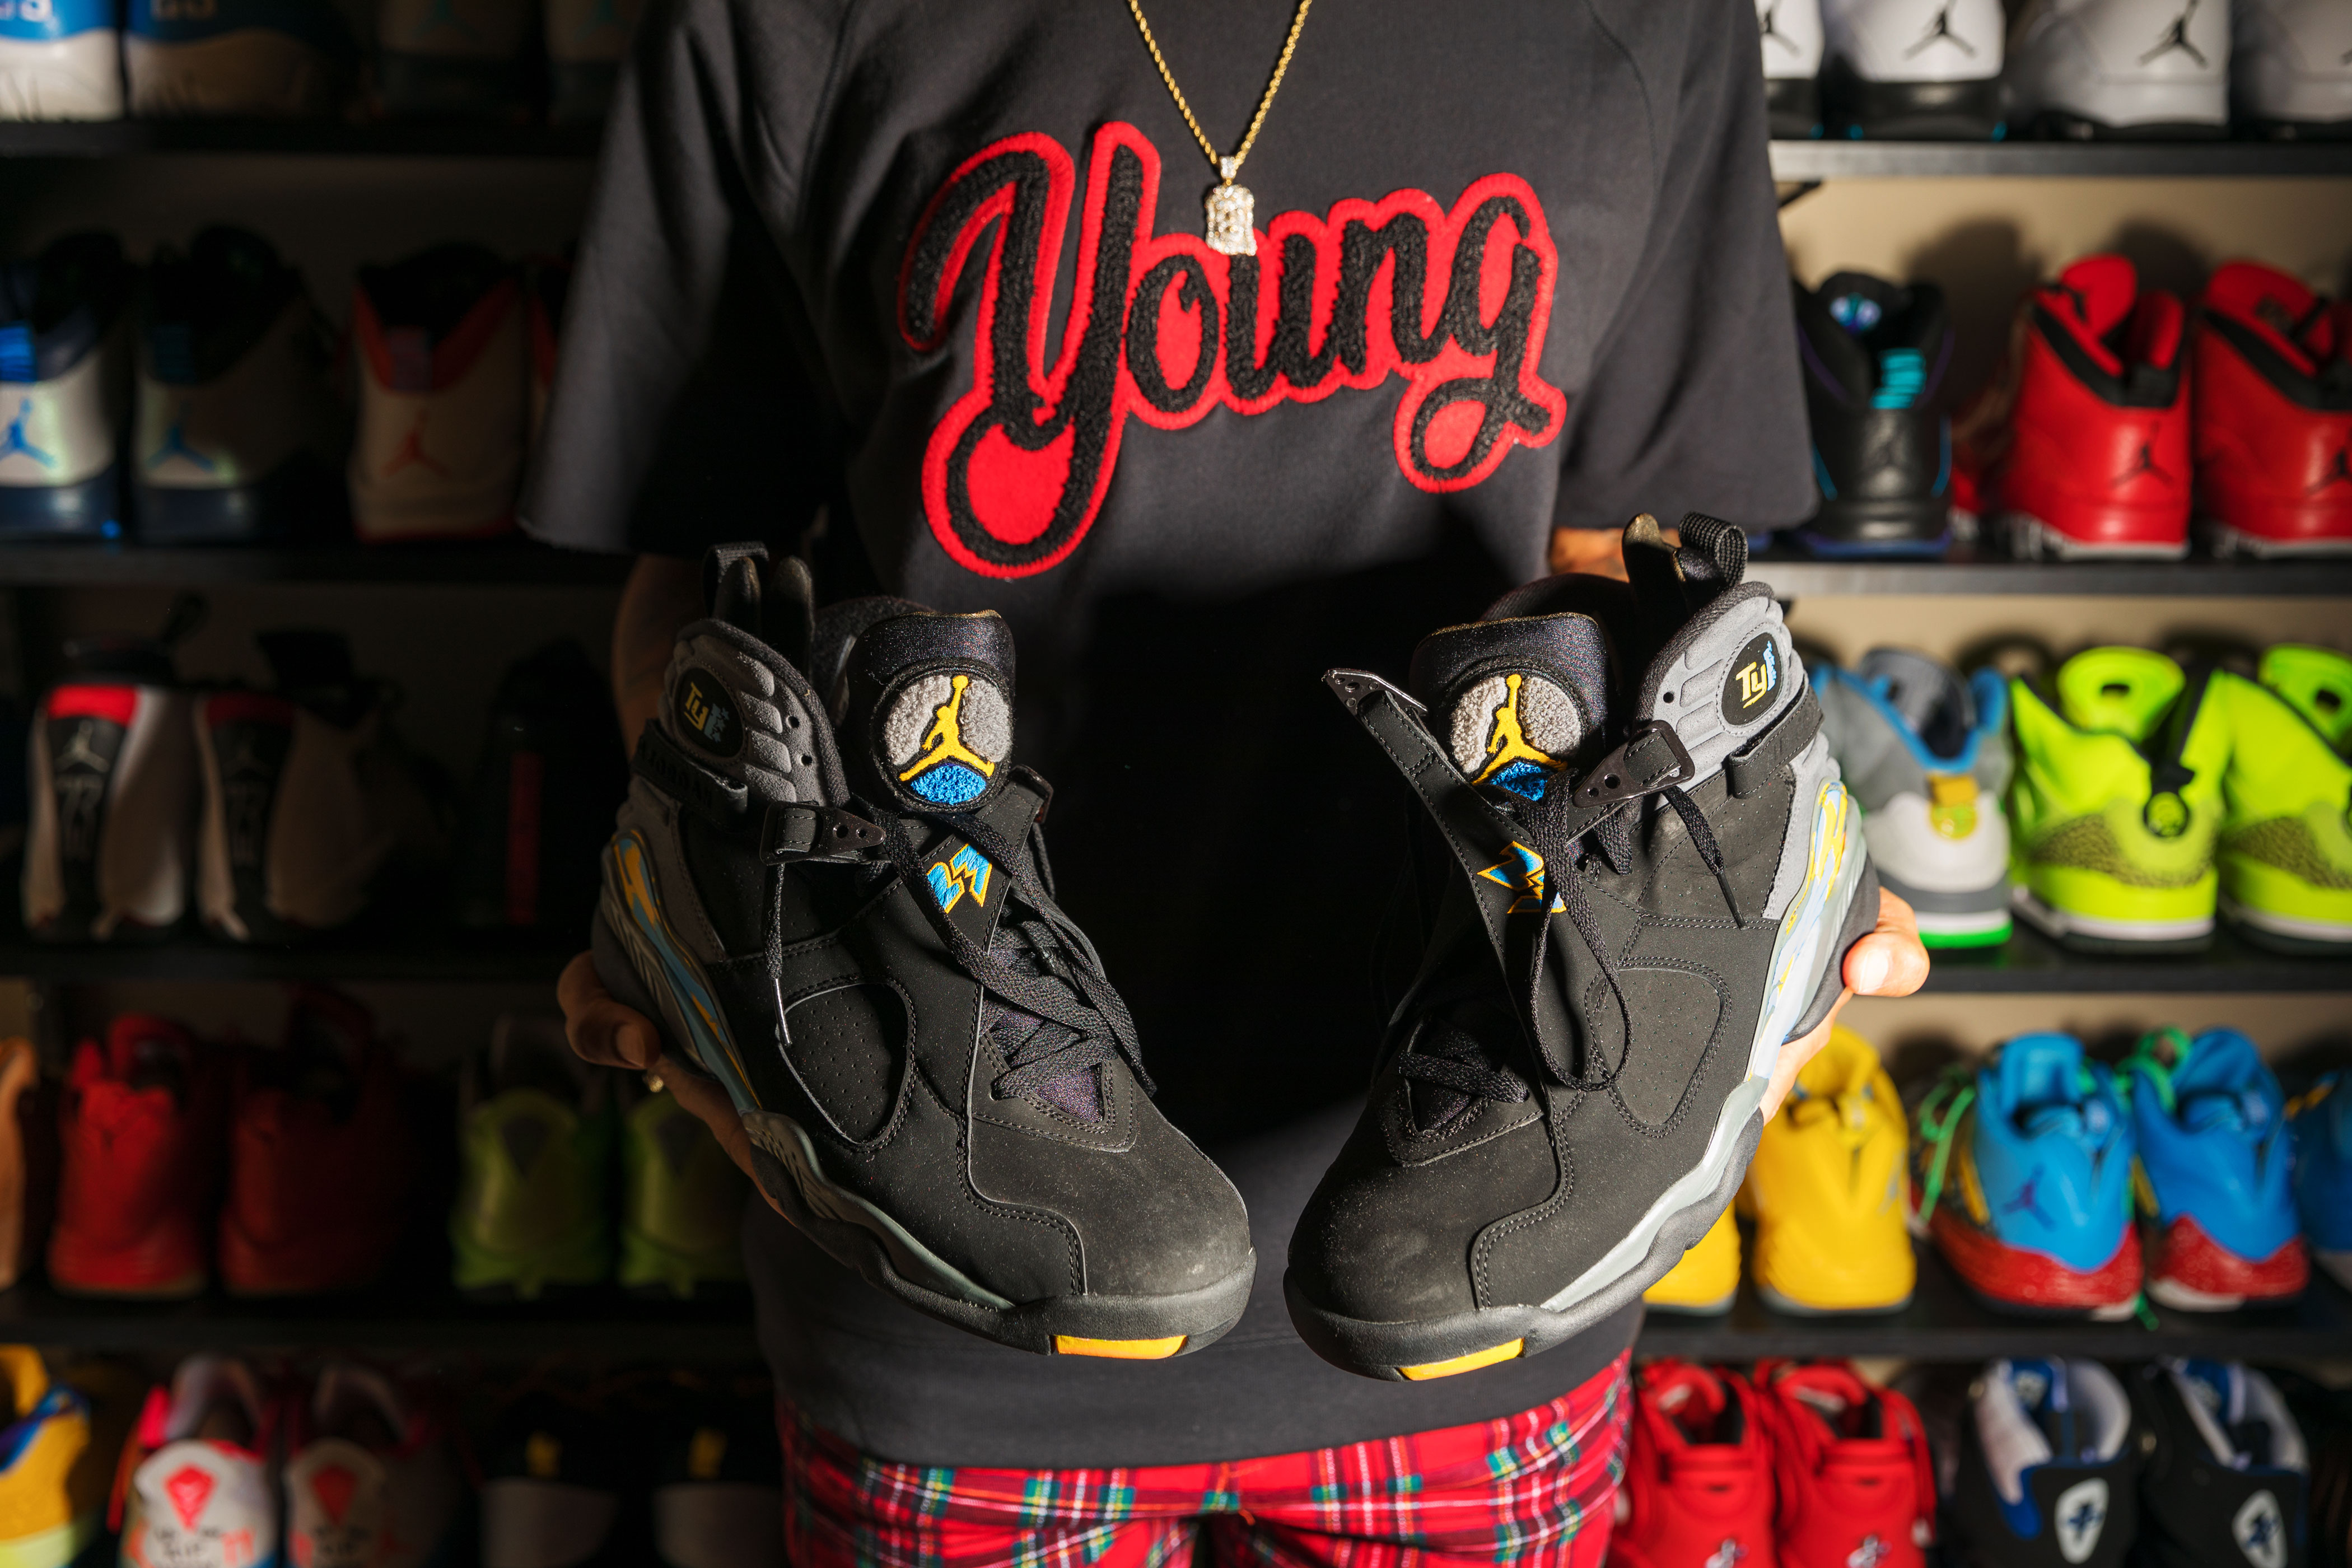 40a7dbd7f922d5 TY Young holds up a pair of Jordans in her Atlanta home. She and Michael  Jordan share a hometown (Wilmington